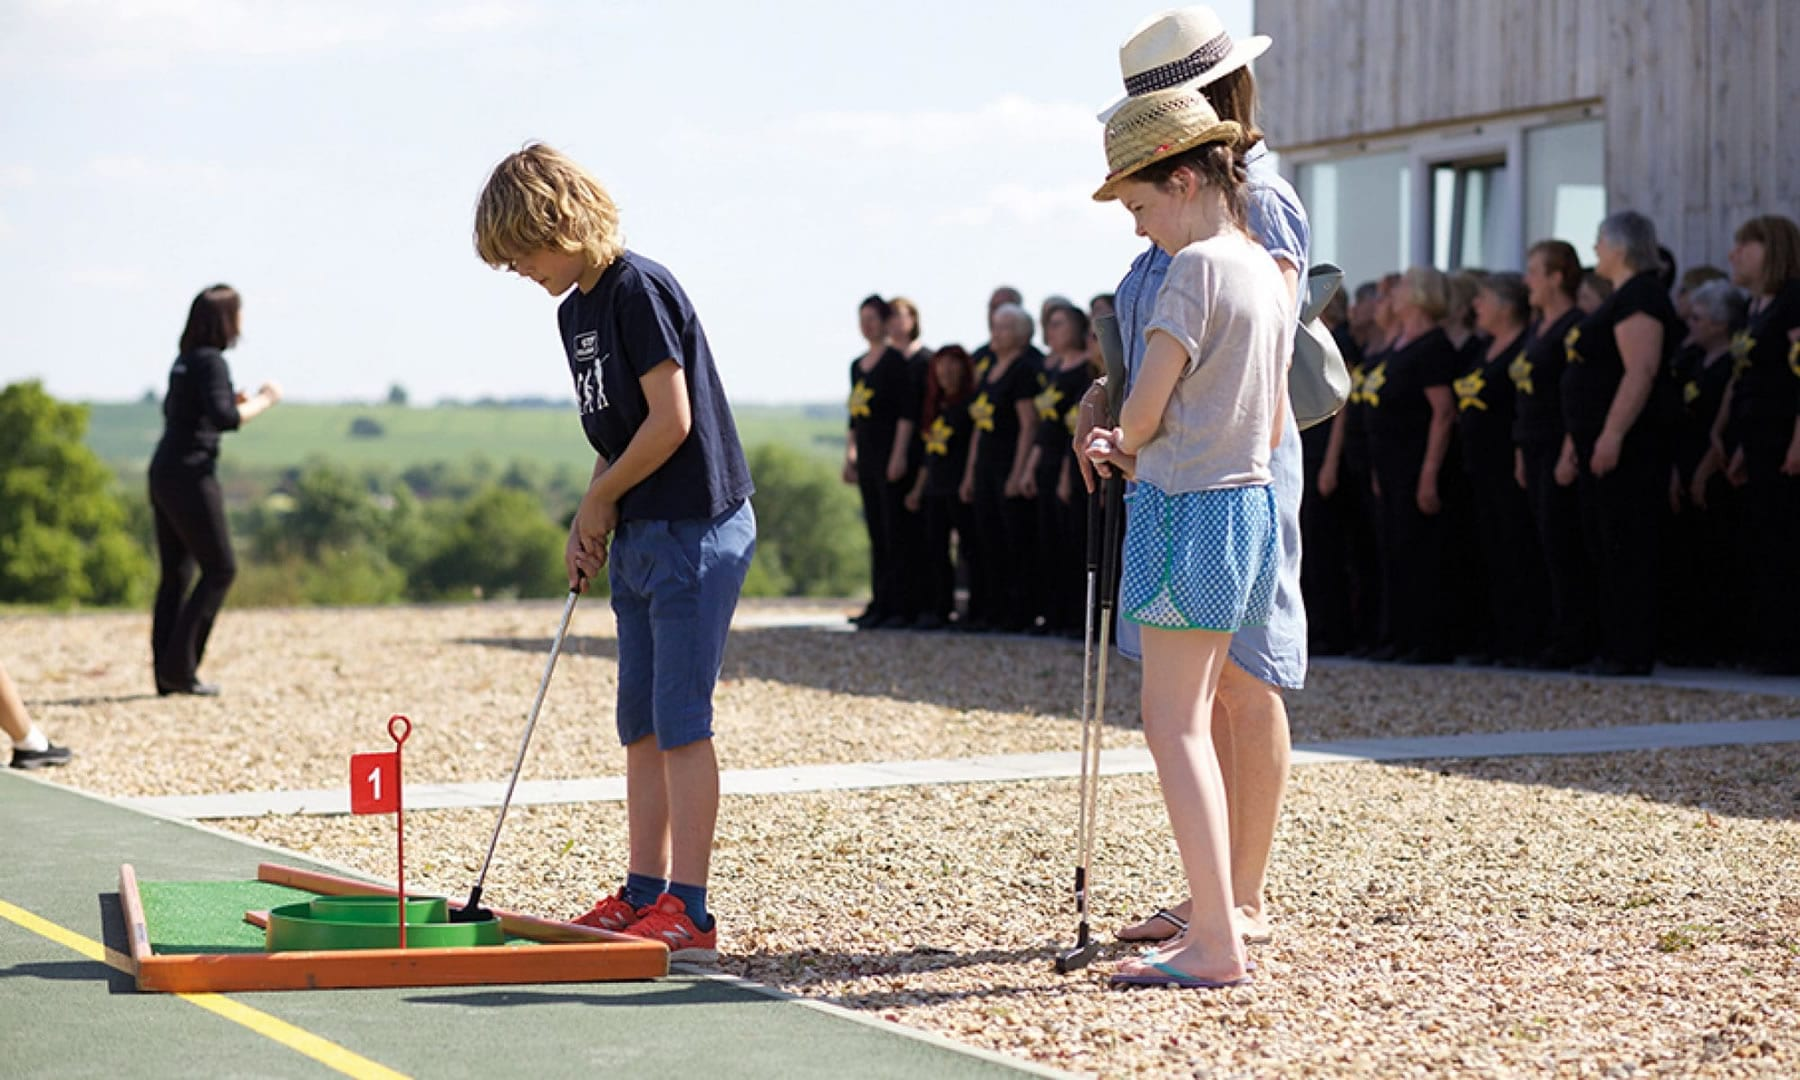 Maymessy celebrations: Crazy golf and rock choir